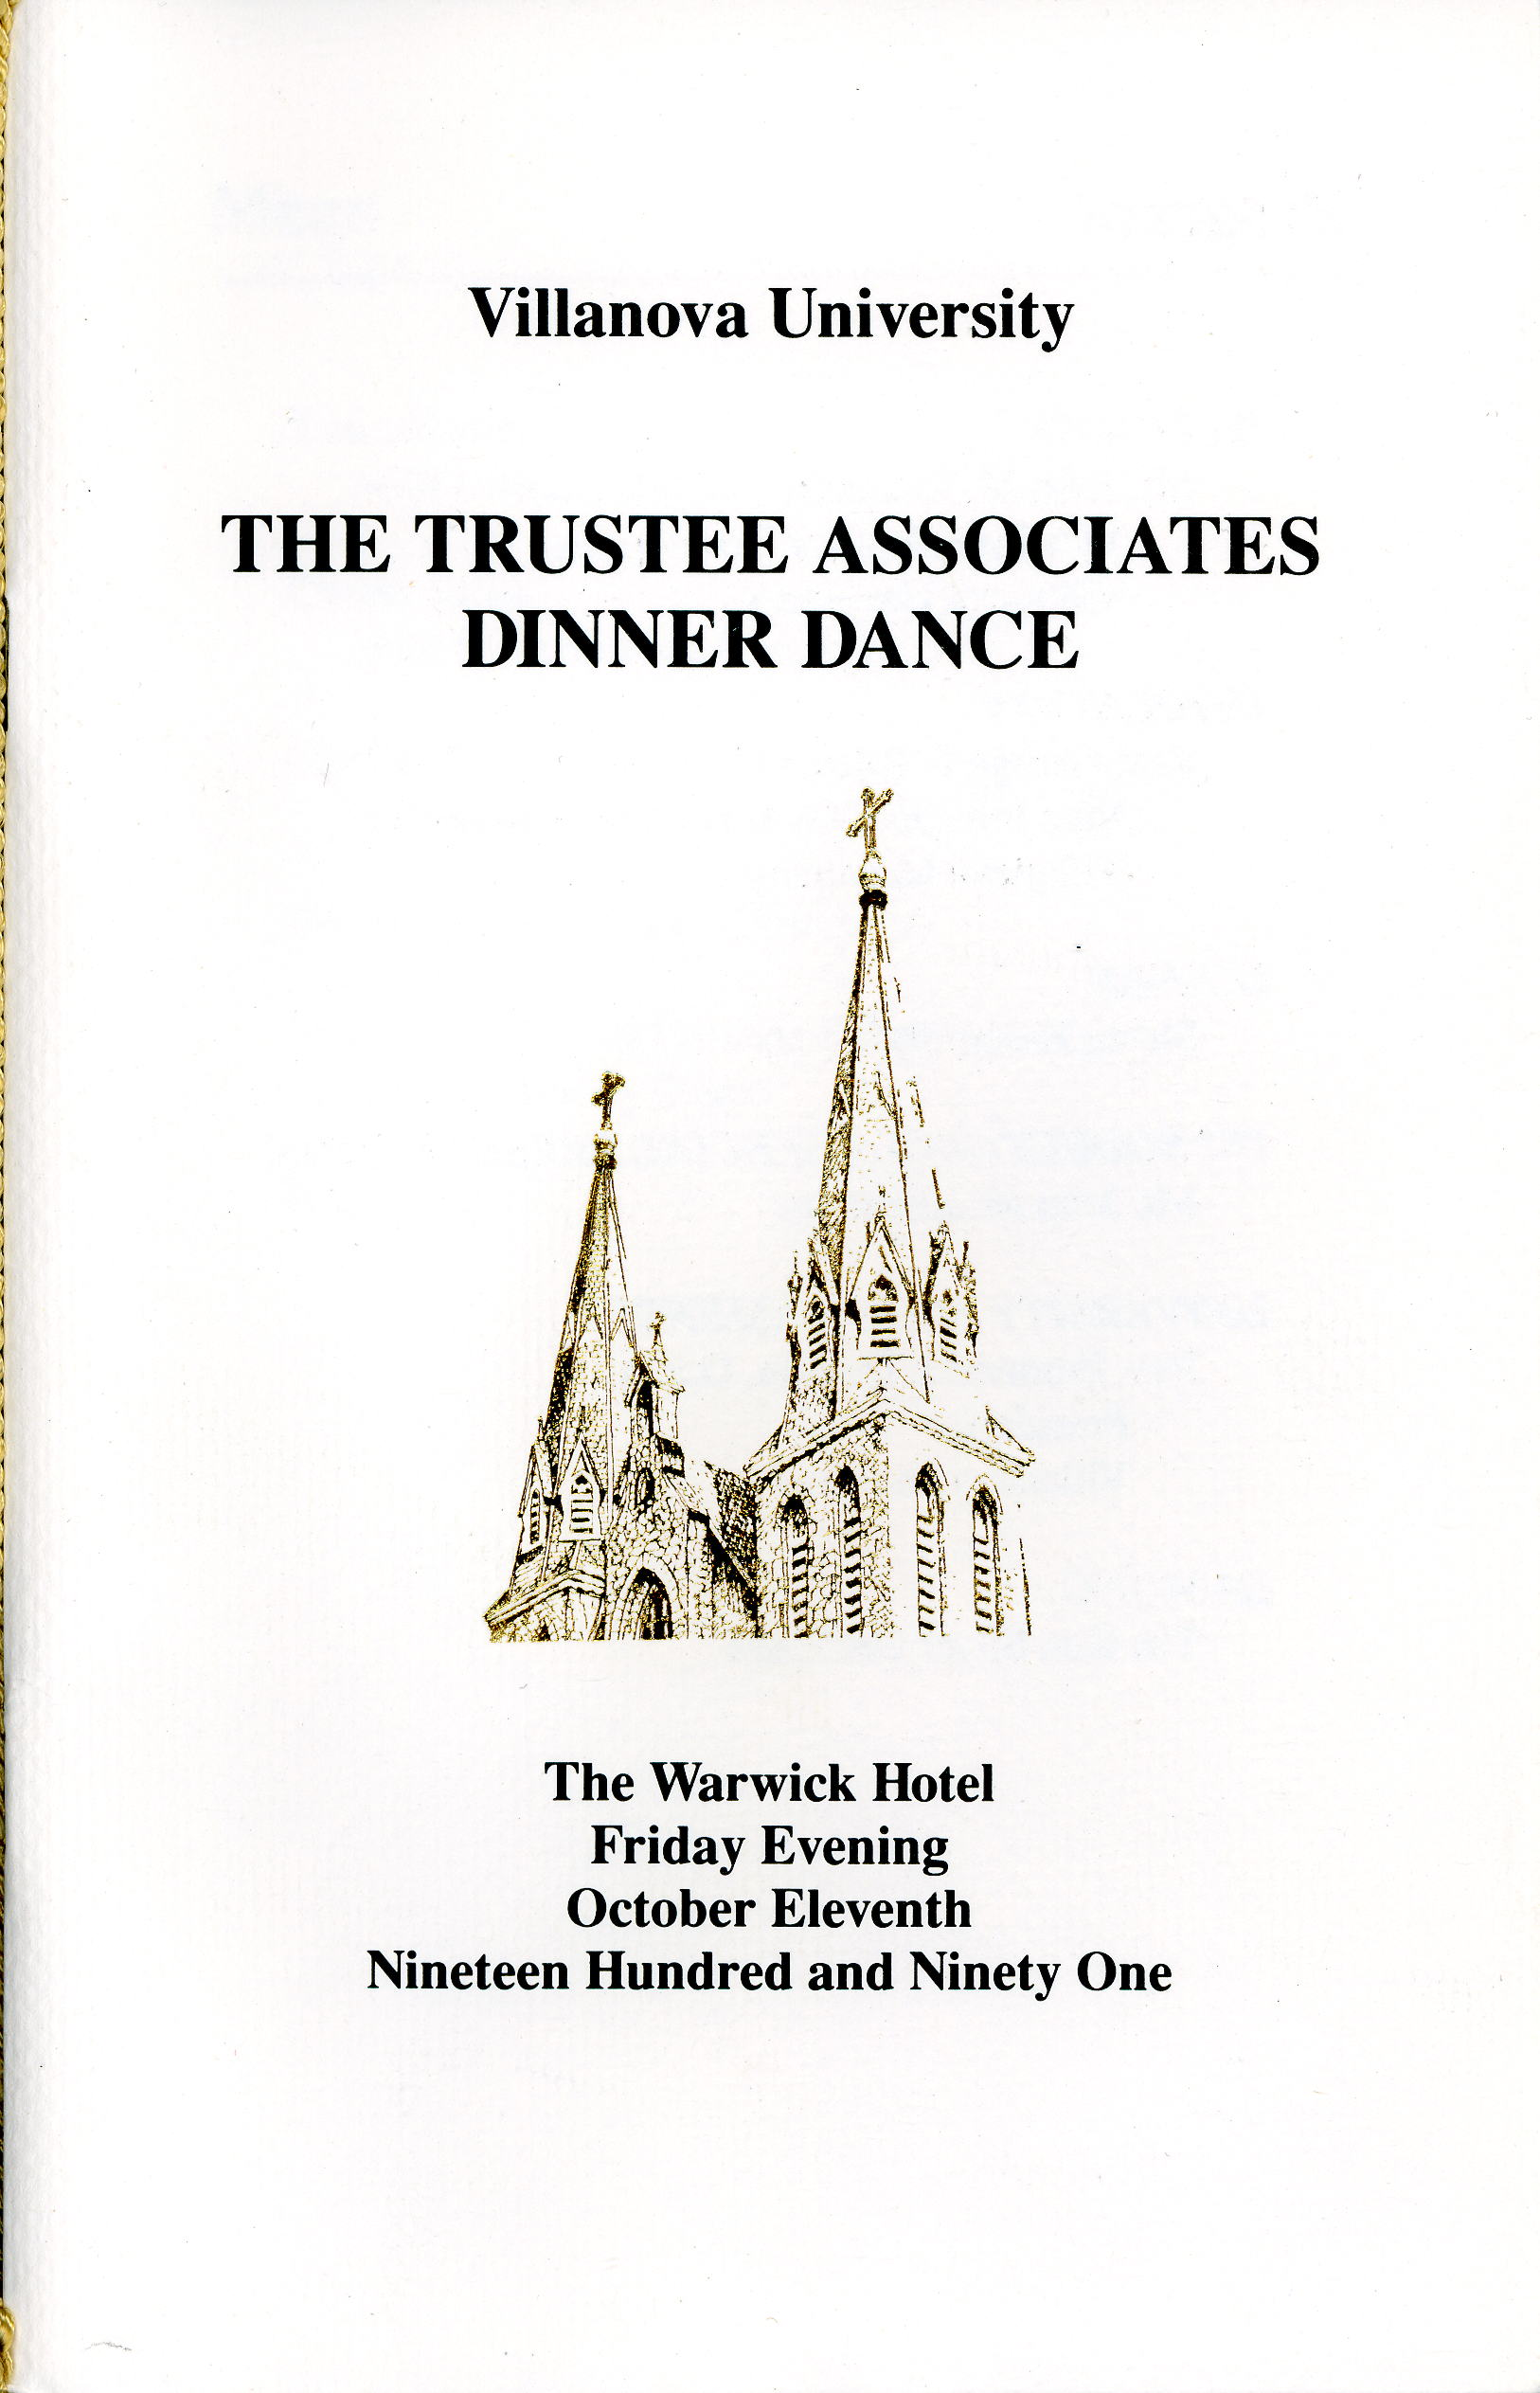 Villanova Trustee Associates Dinner Dance